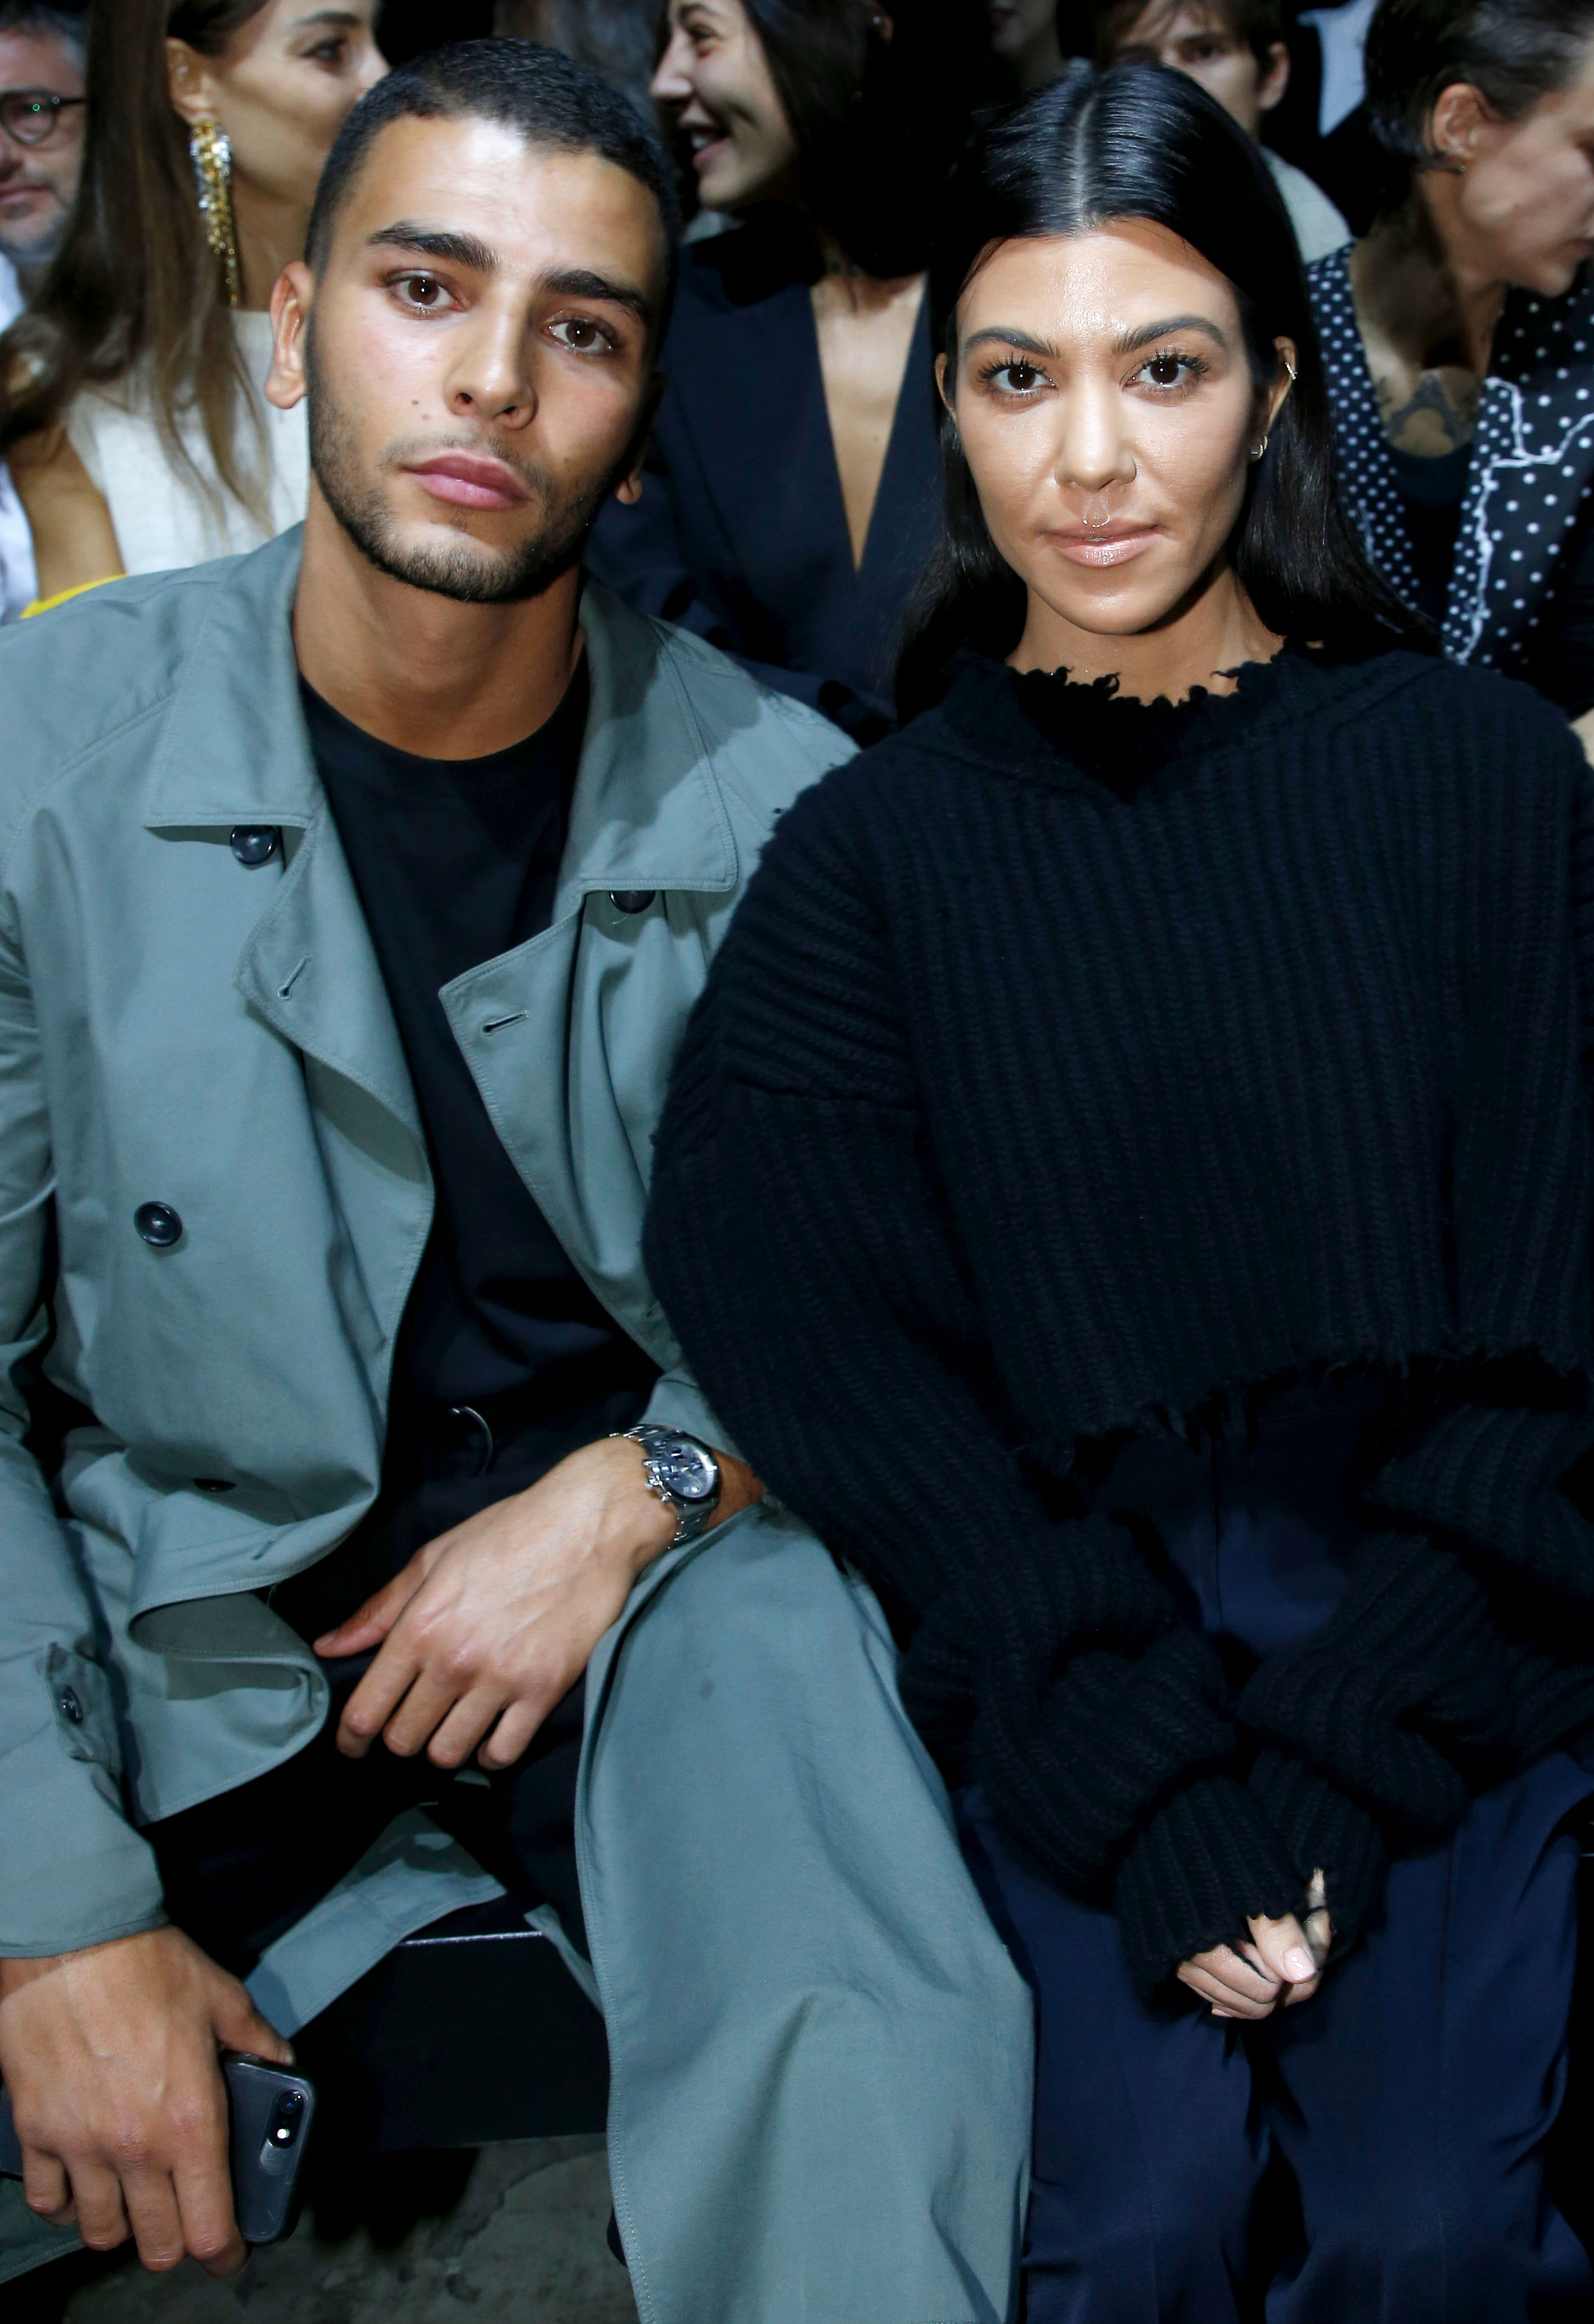 Kourtney Kardashian Through the Years - The Poosh founder's romance with Younes was hot and heavy in 2017.